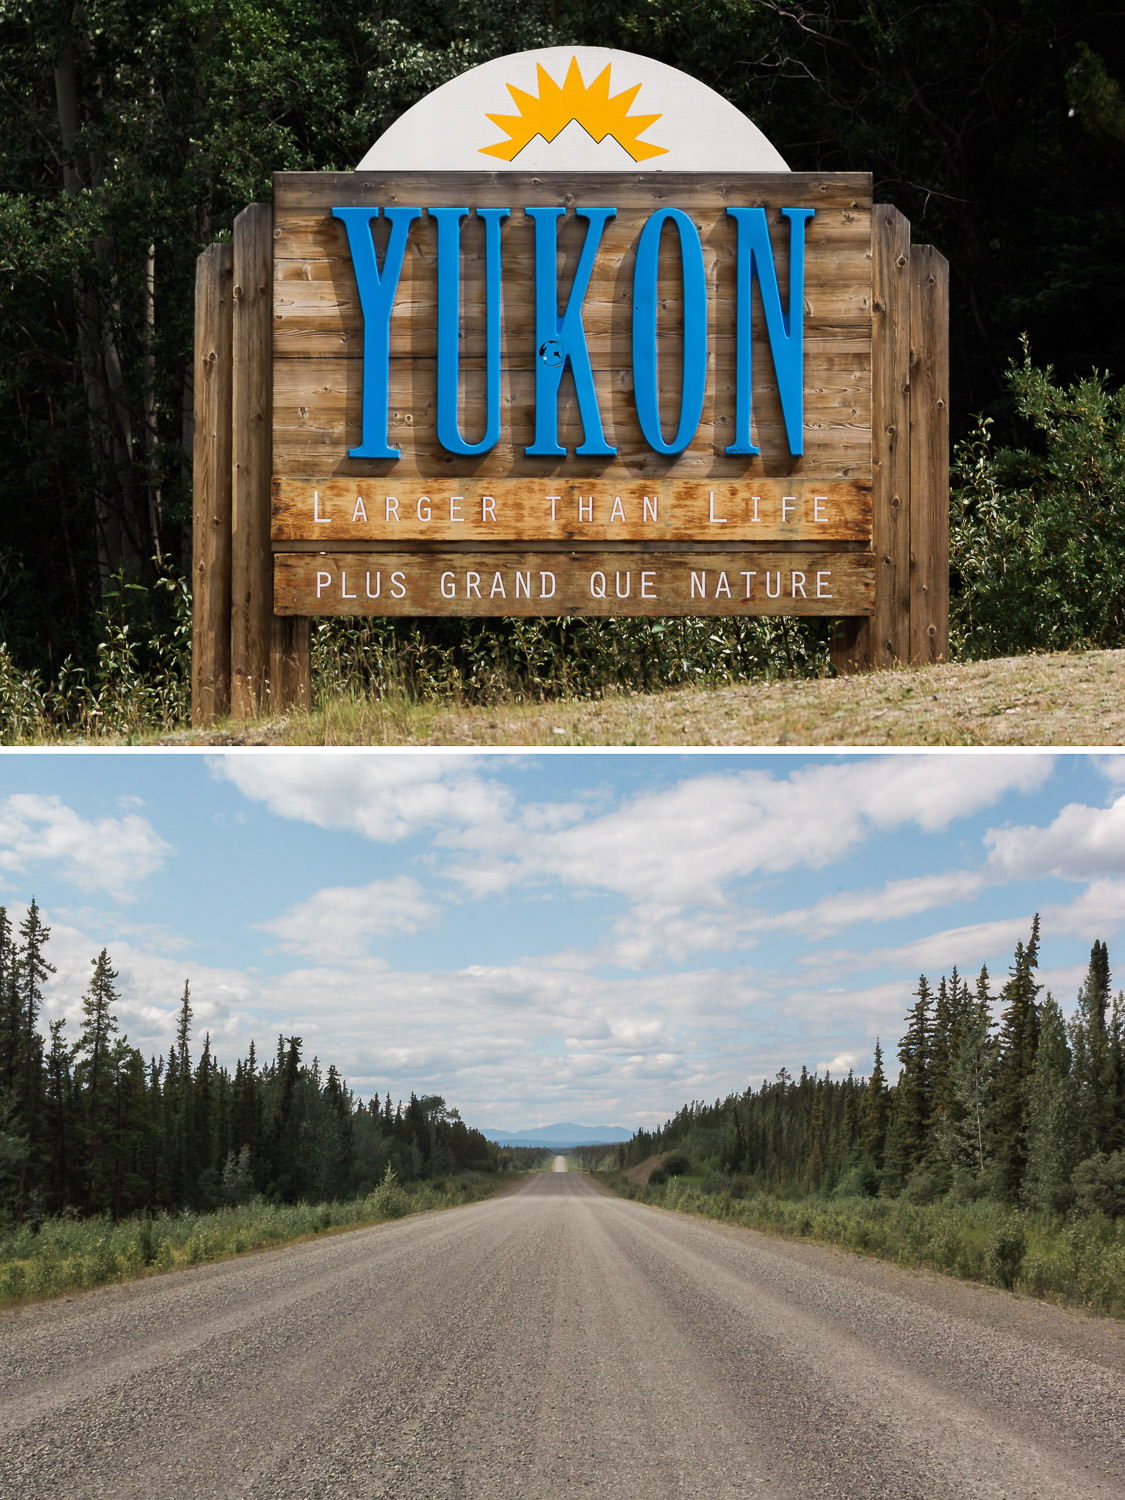 The legendary Yukon Territory. This place captured my heart and soul.